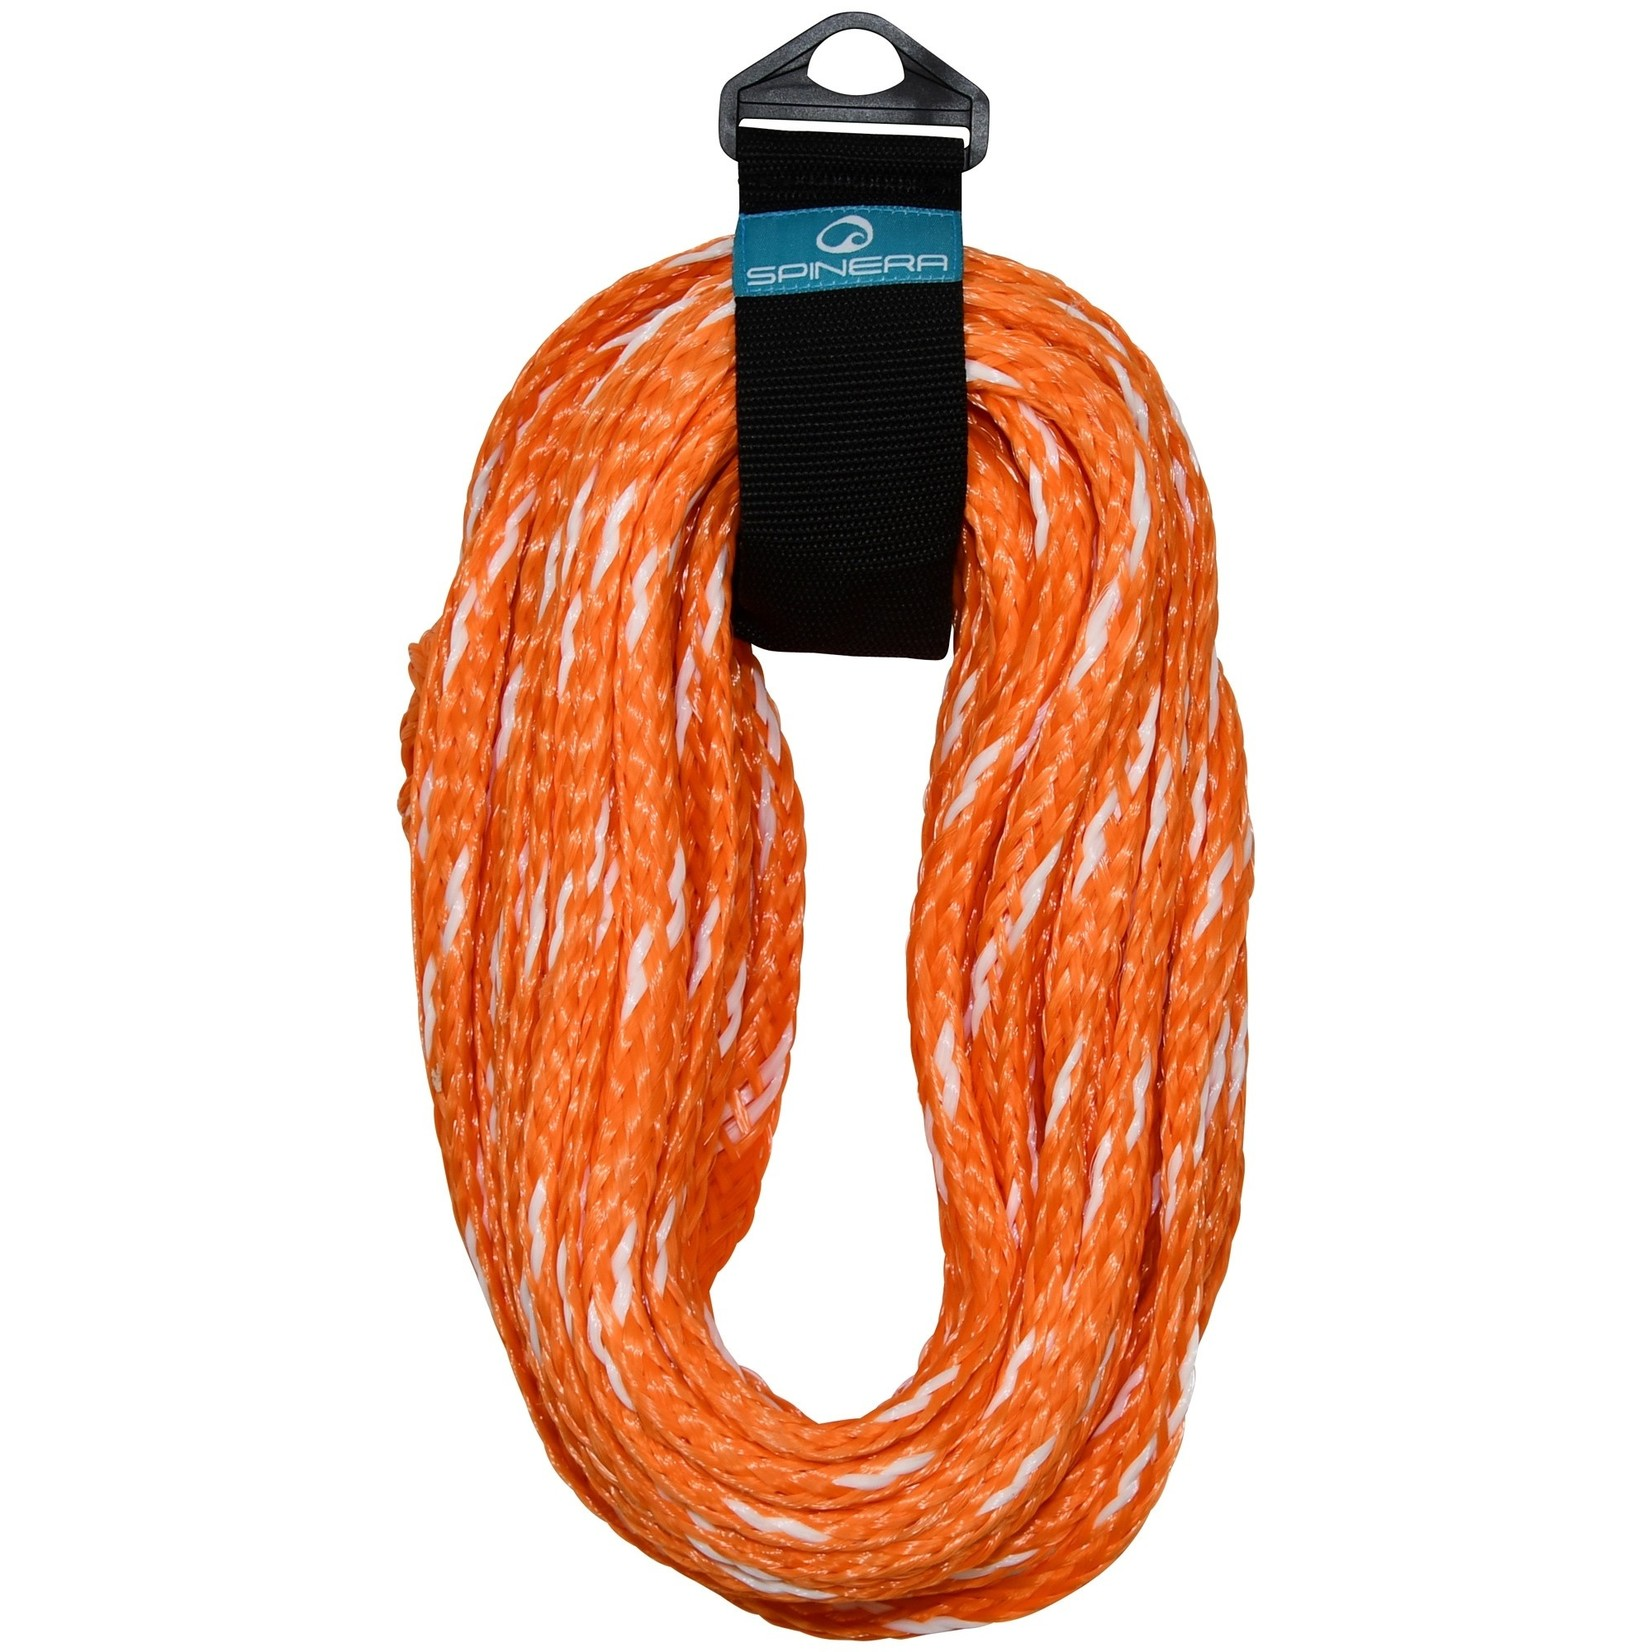 Spinera Towable Rope 2 - Two persons